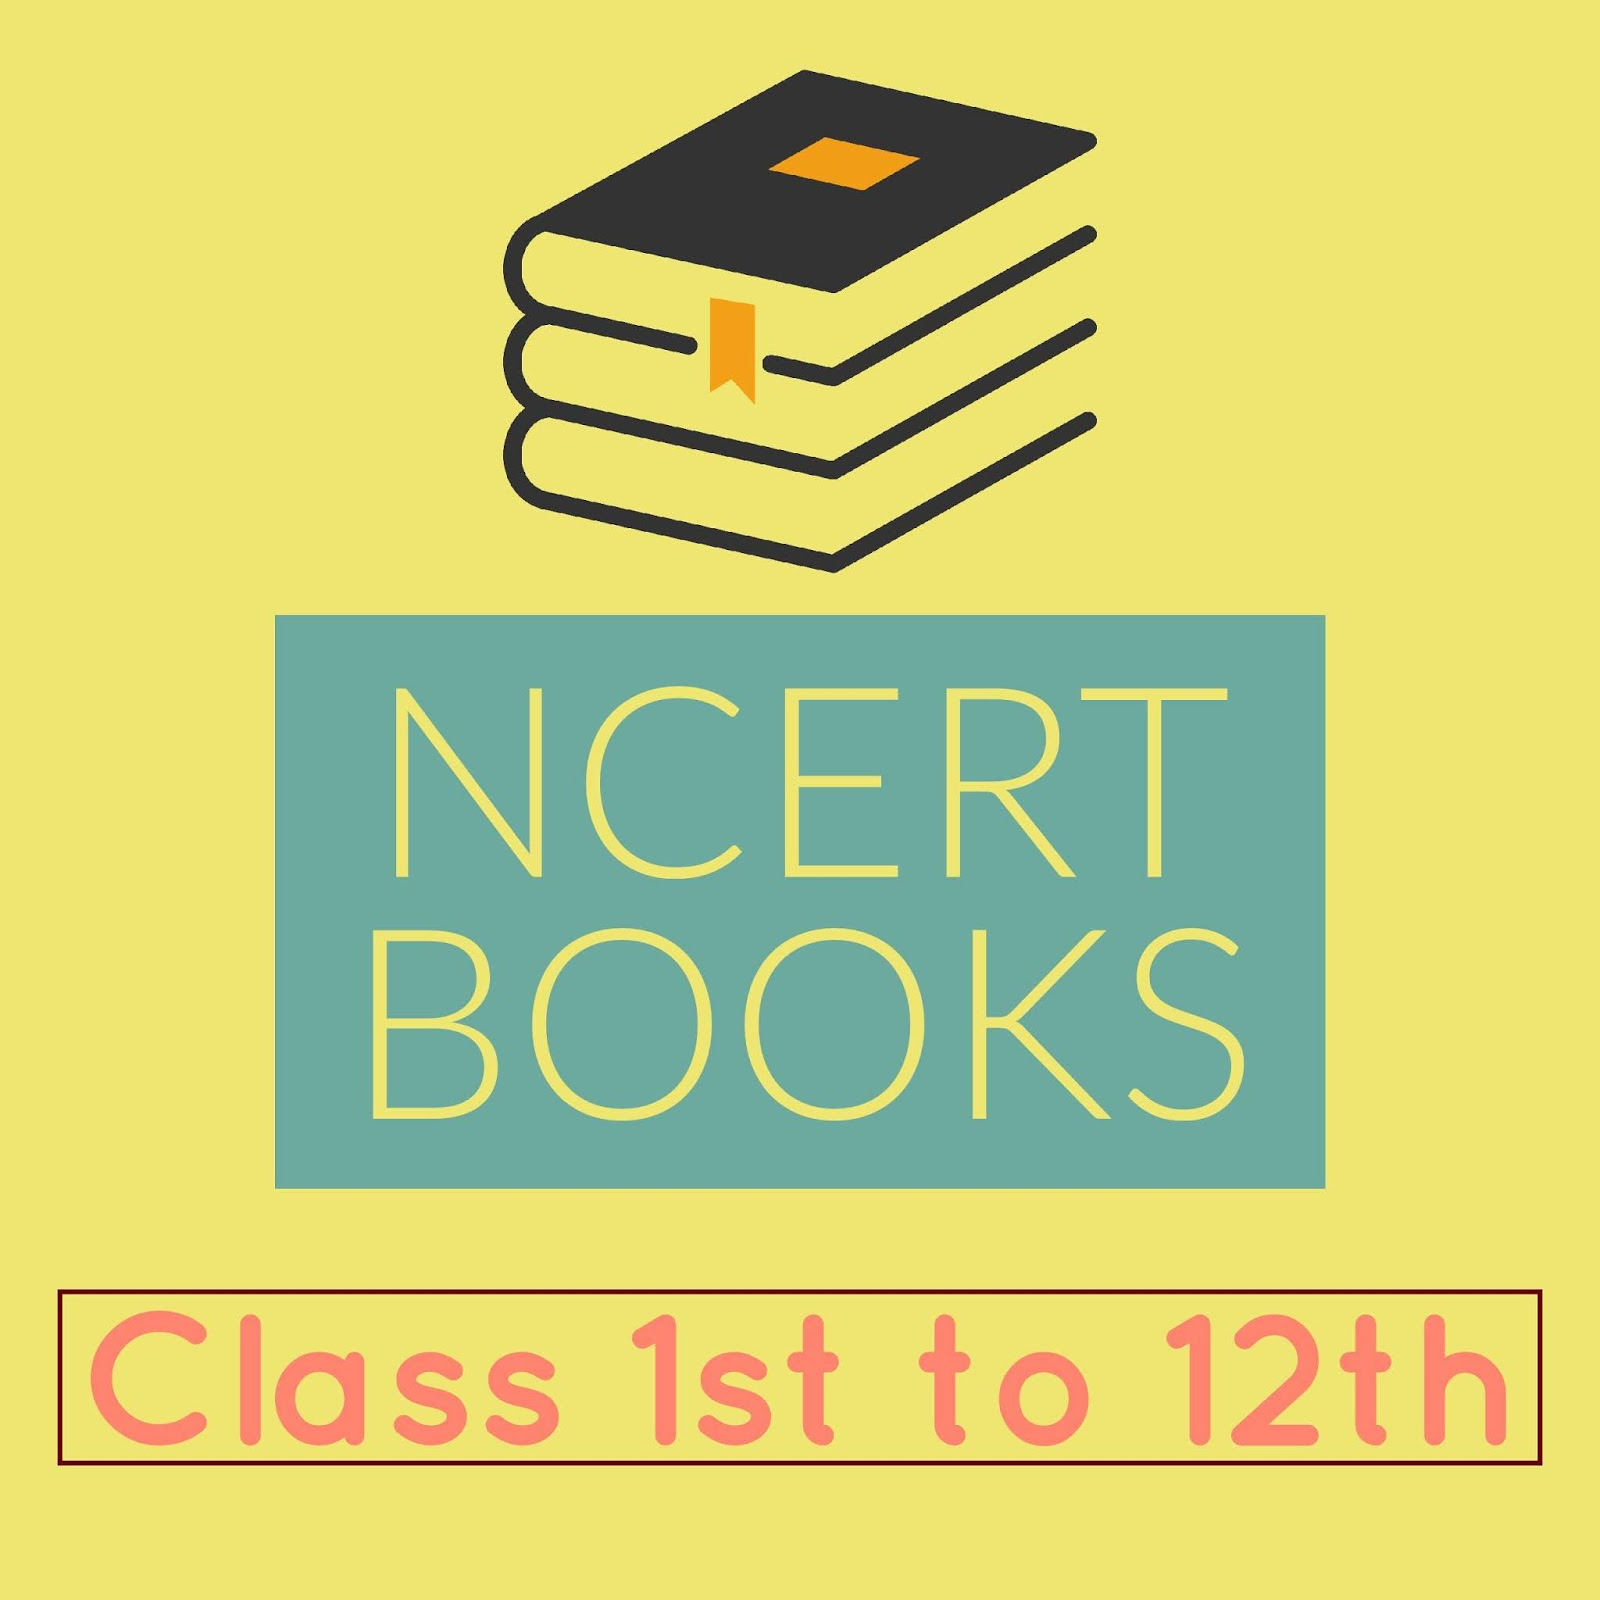 NCERT CLASS 1st to 12th Free PDF Download